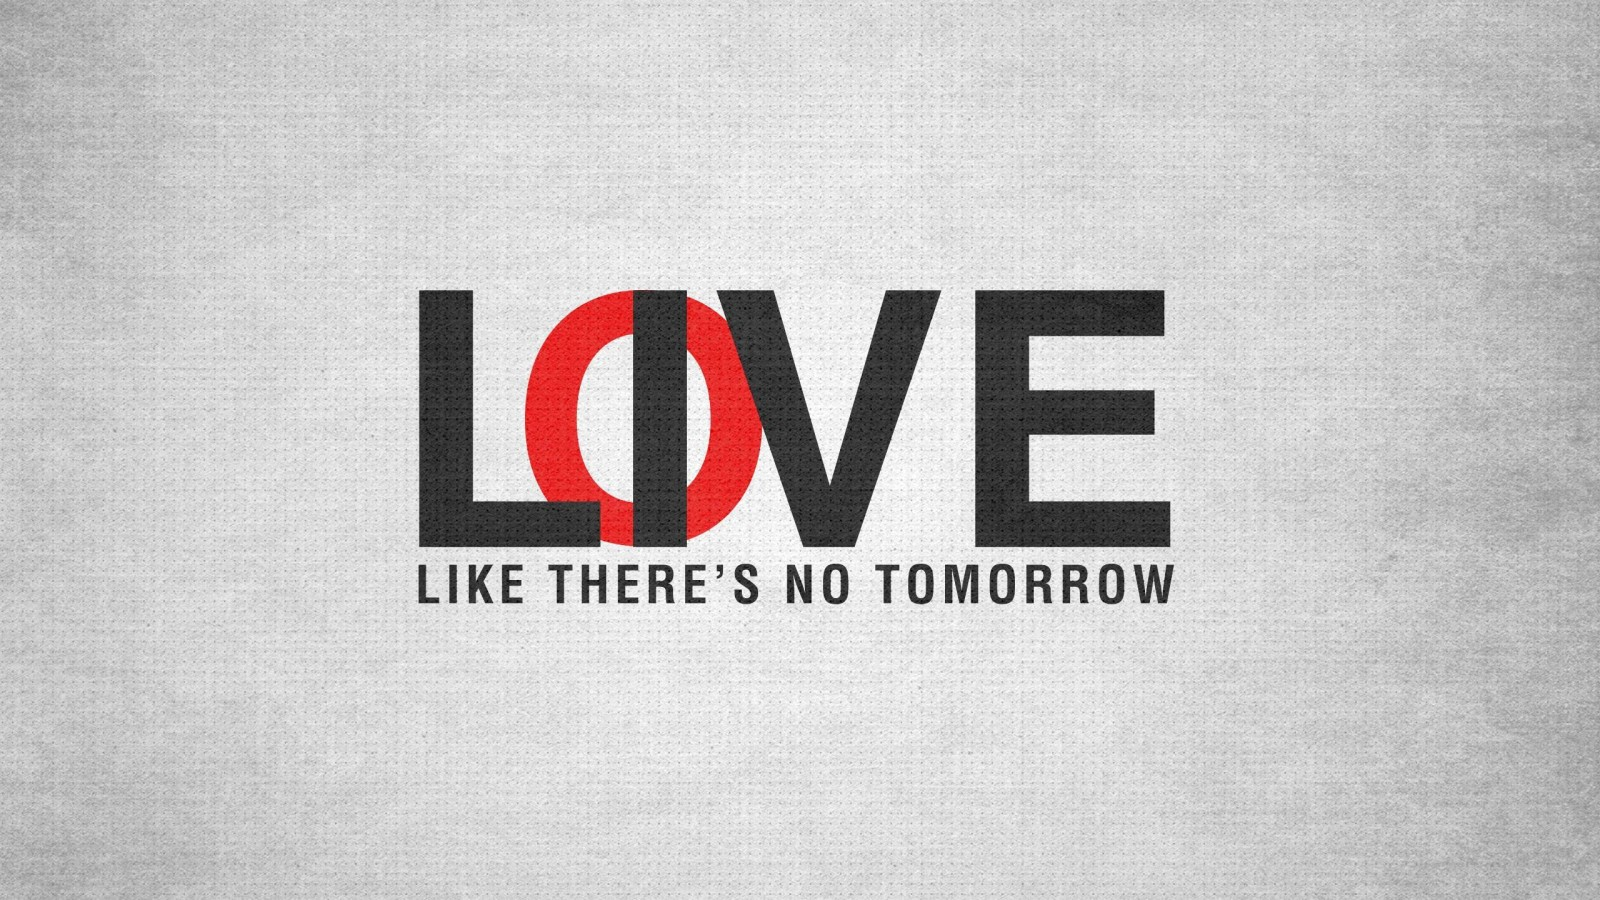 Download Live Like There's No Tomorrow HD Wallpaper For